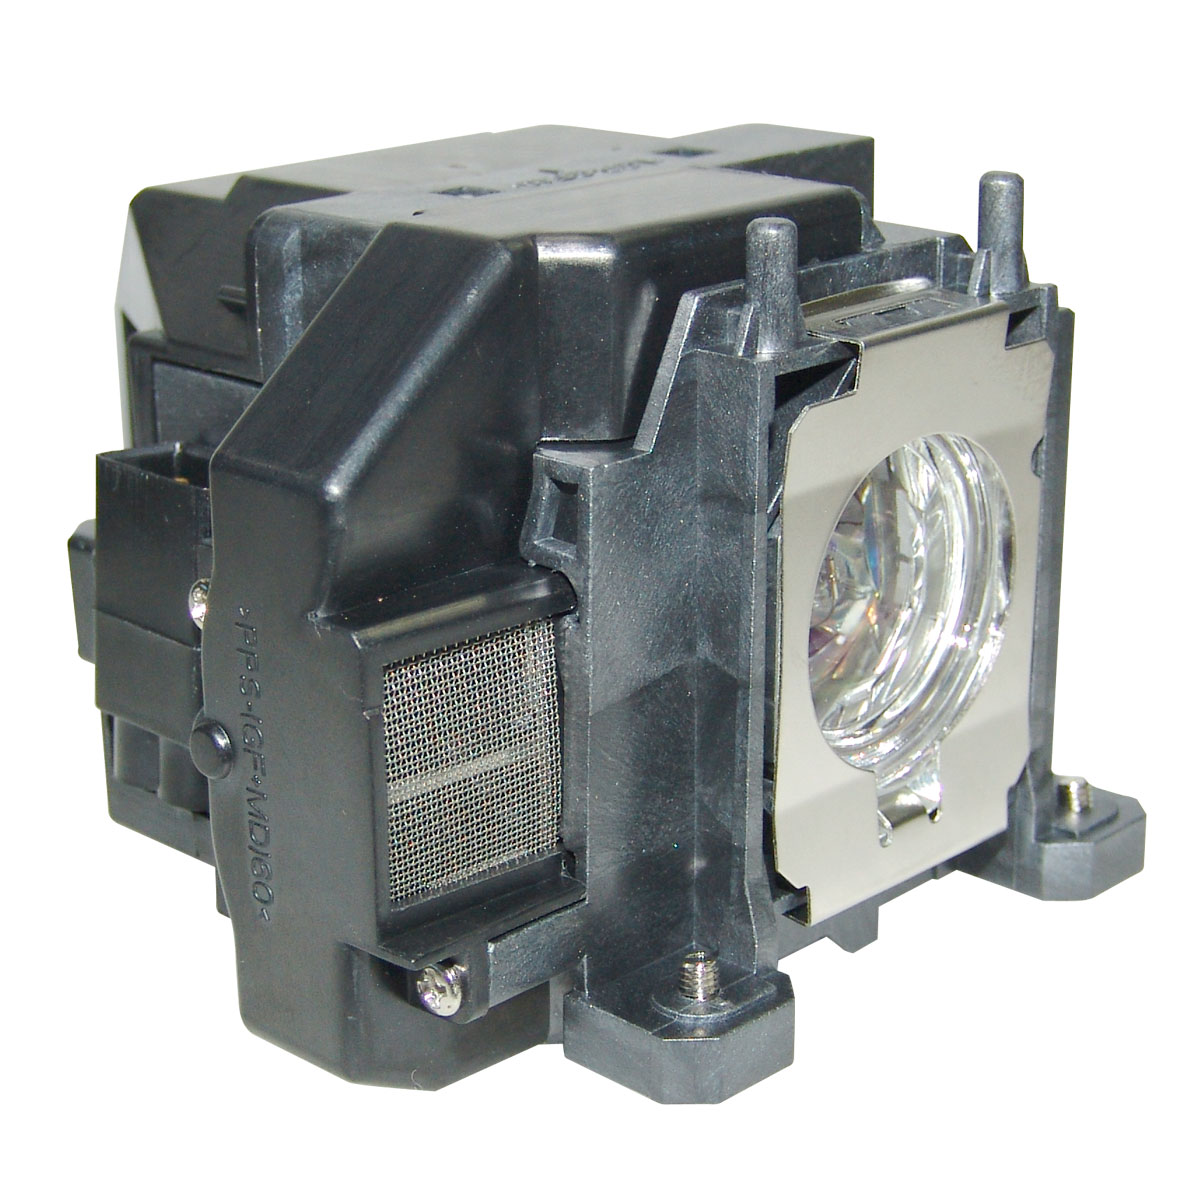 Lutema Economy for Epson EX7210 Projector Lamp with Housing - image 3 of 5